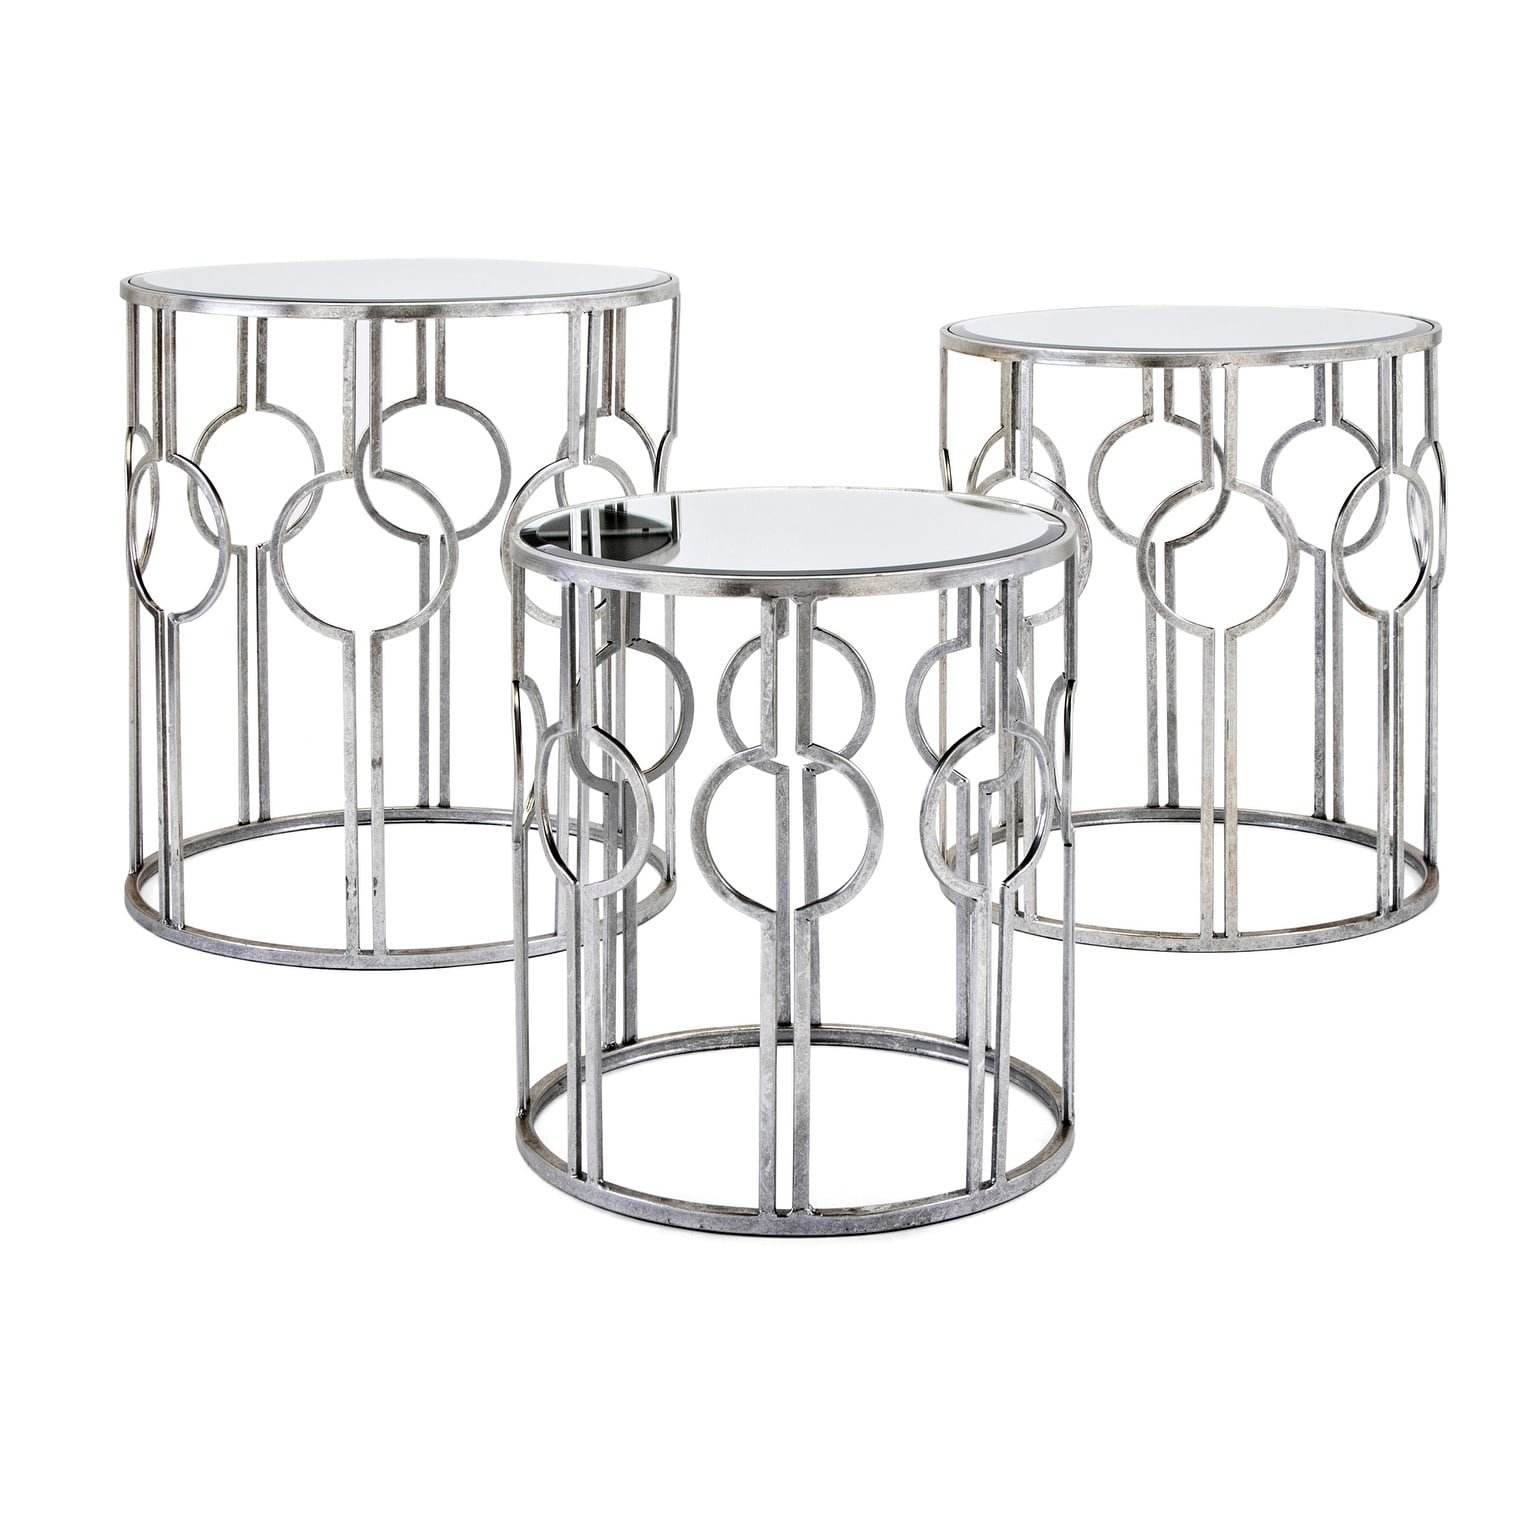 margaret antiqued silver mirror accent tables set with matching mirrors free shipping today carved wood side table patio legs modern round end storage nautical track lighting